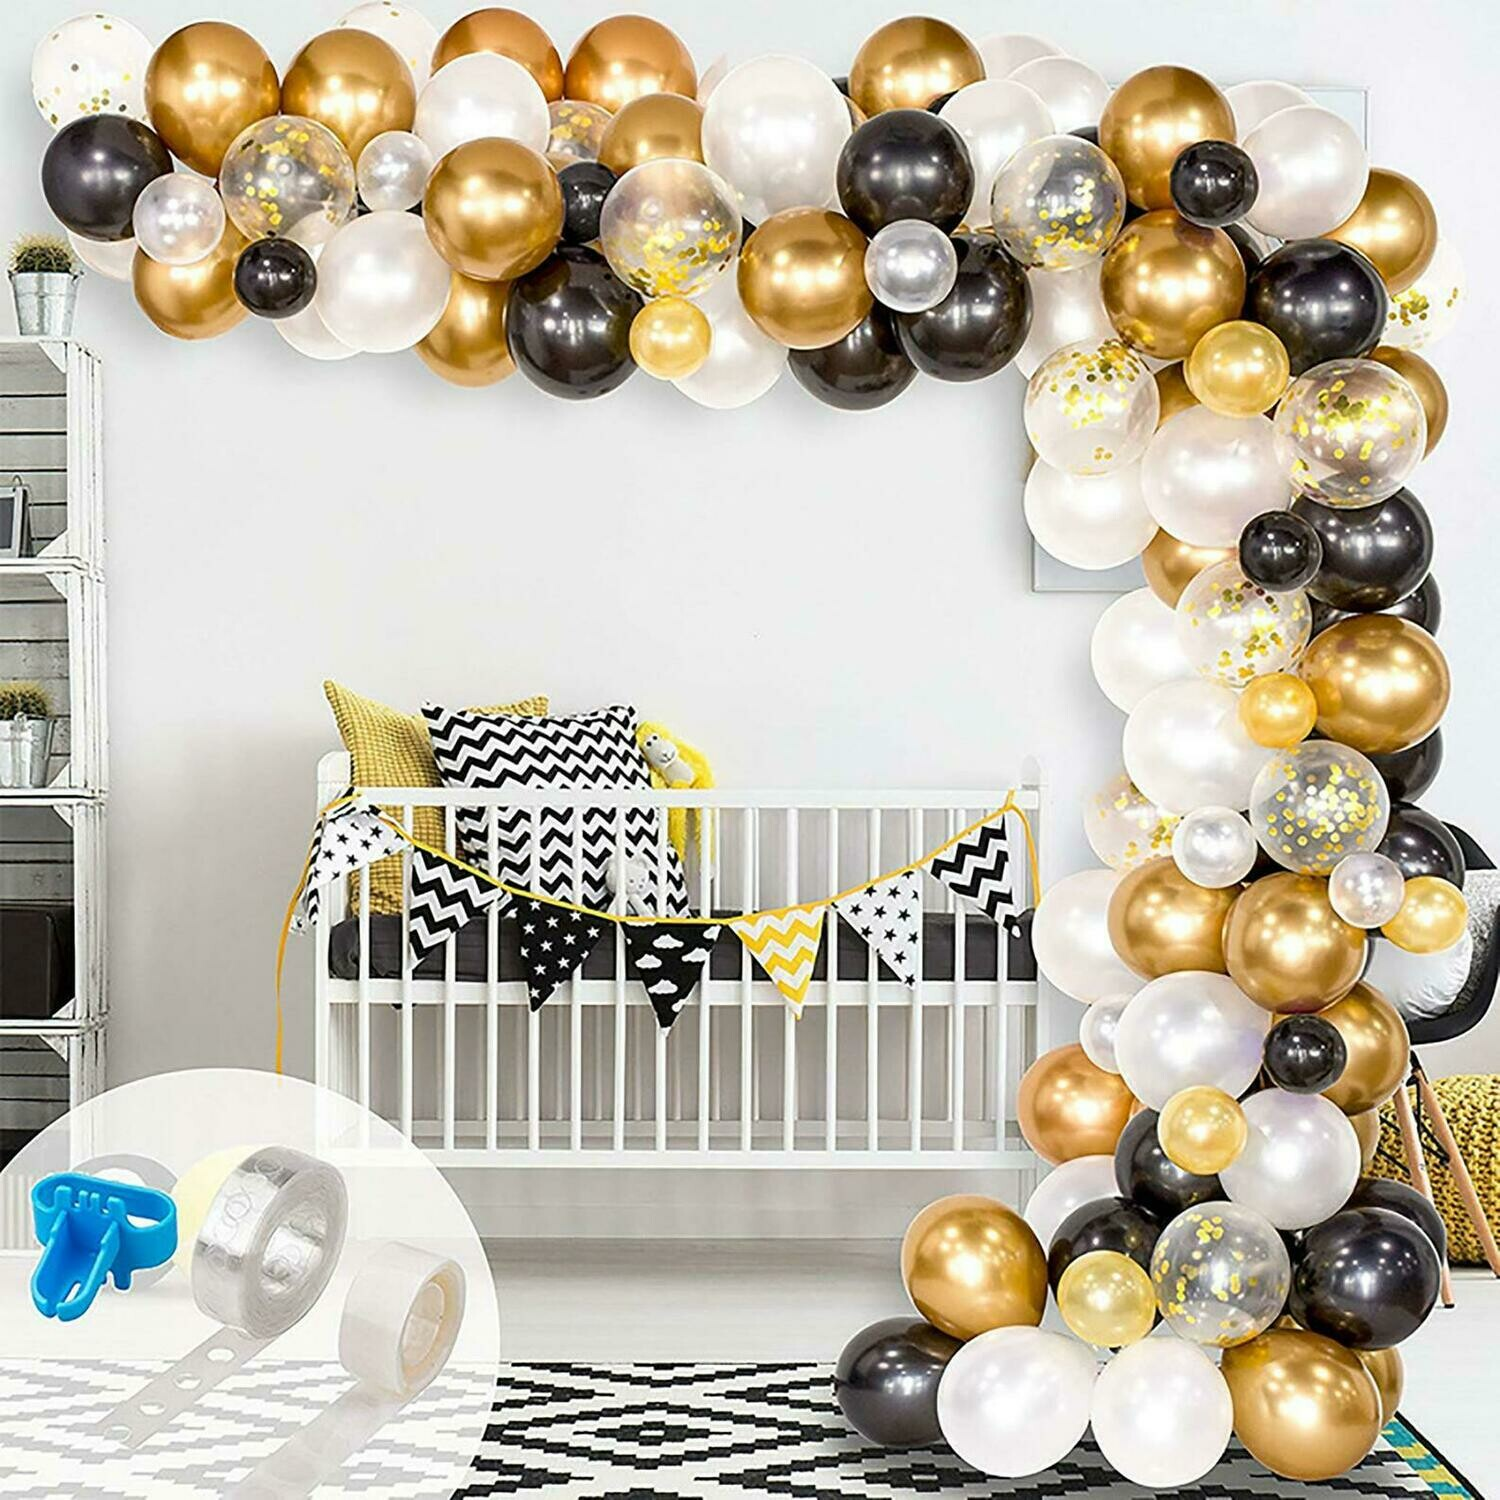 Garland Kit,Balloon Arch, Black White Gold Balloons,Craft Supplies & Party ,Wedding Balloon,Party Balloon Decoration,Craft Supplies